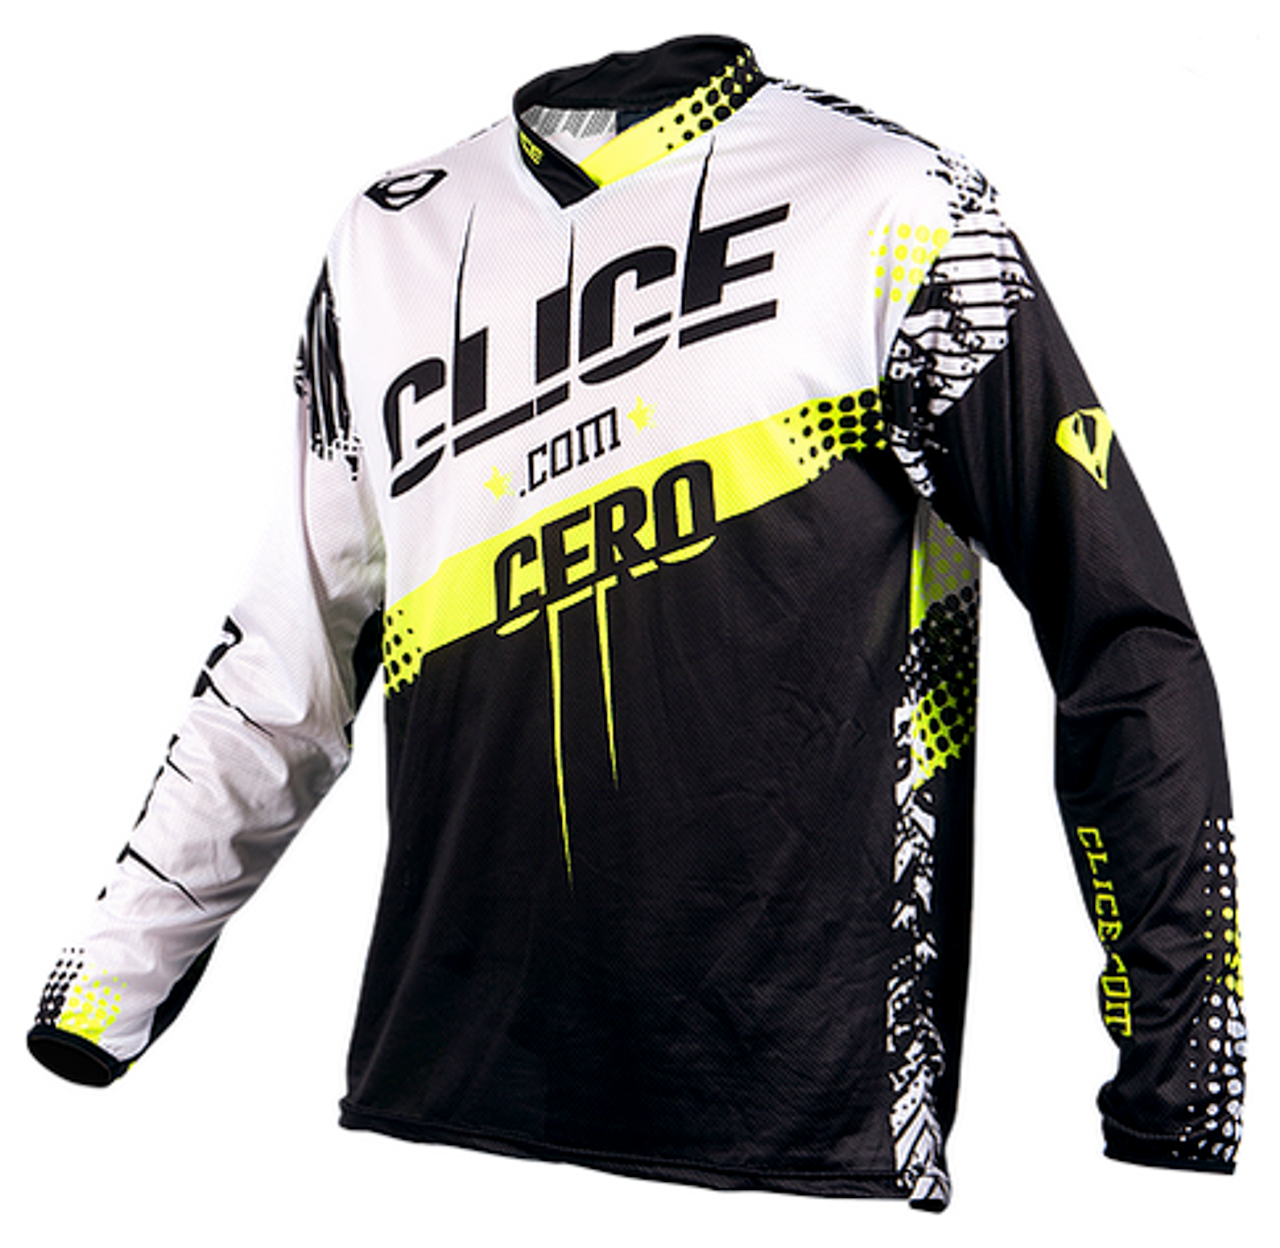 Clice Cero 2018 yellow/black jersey front